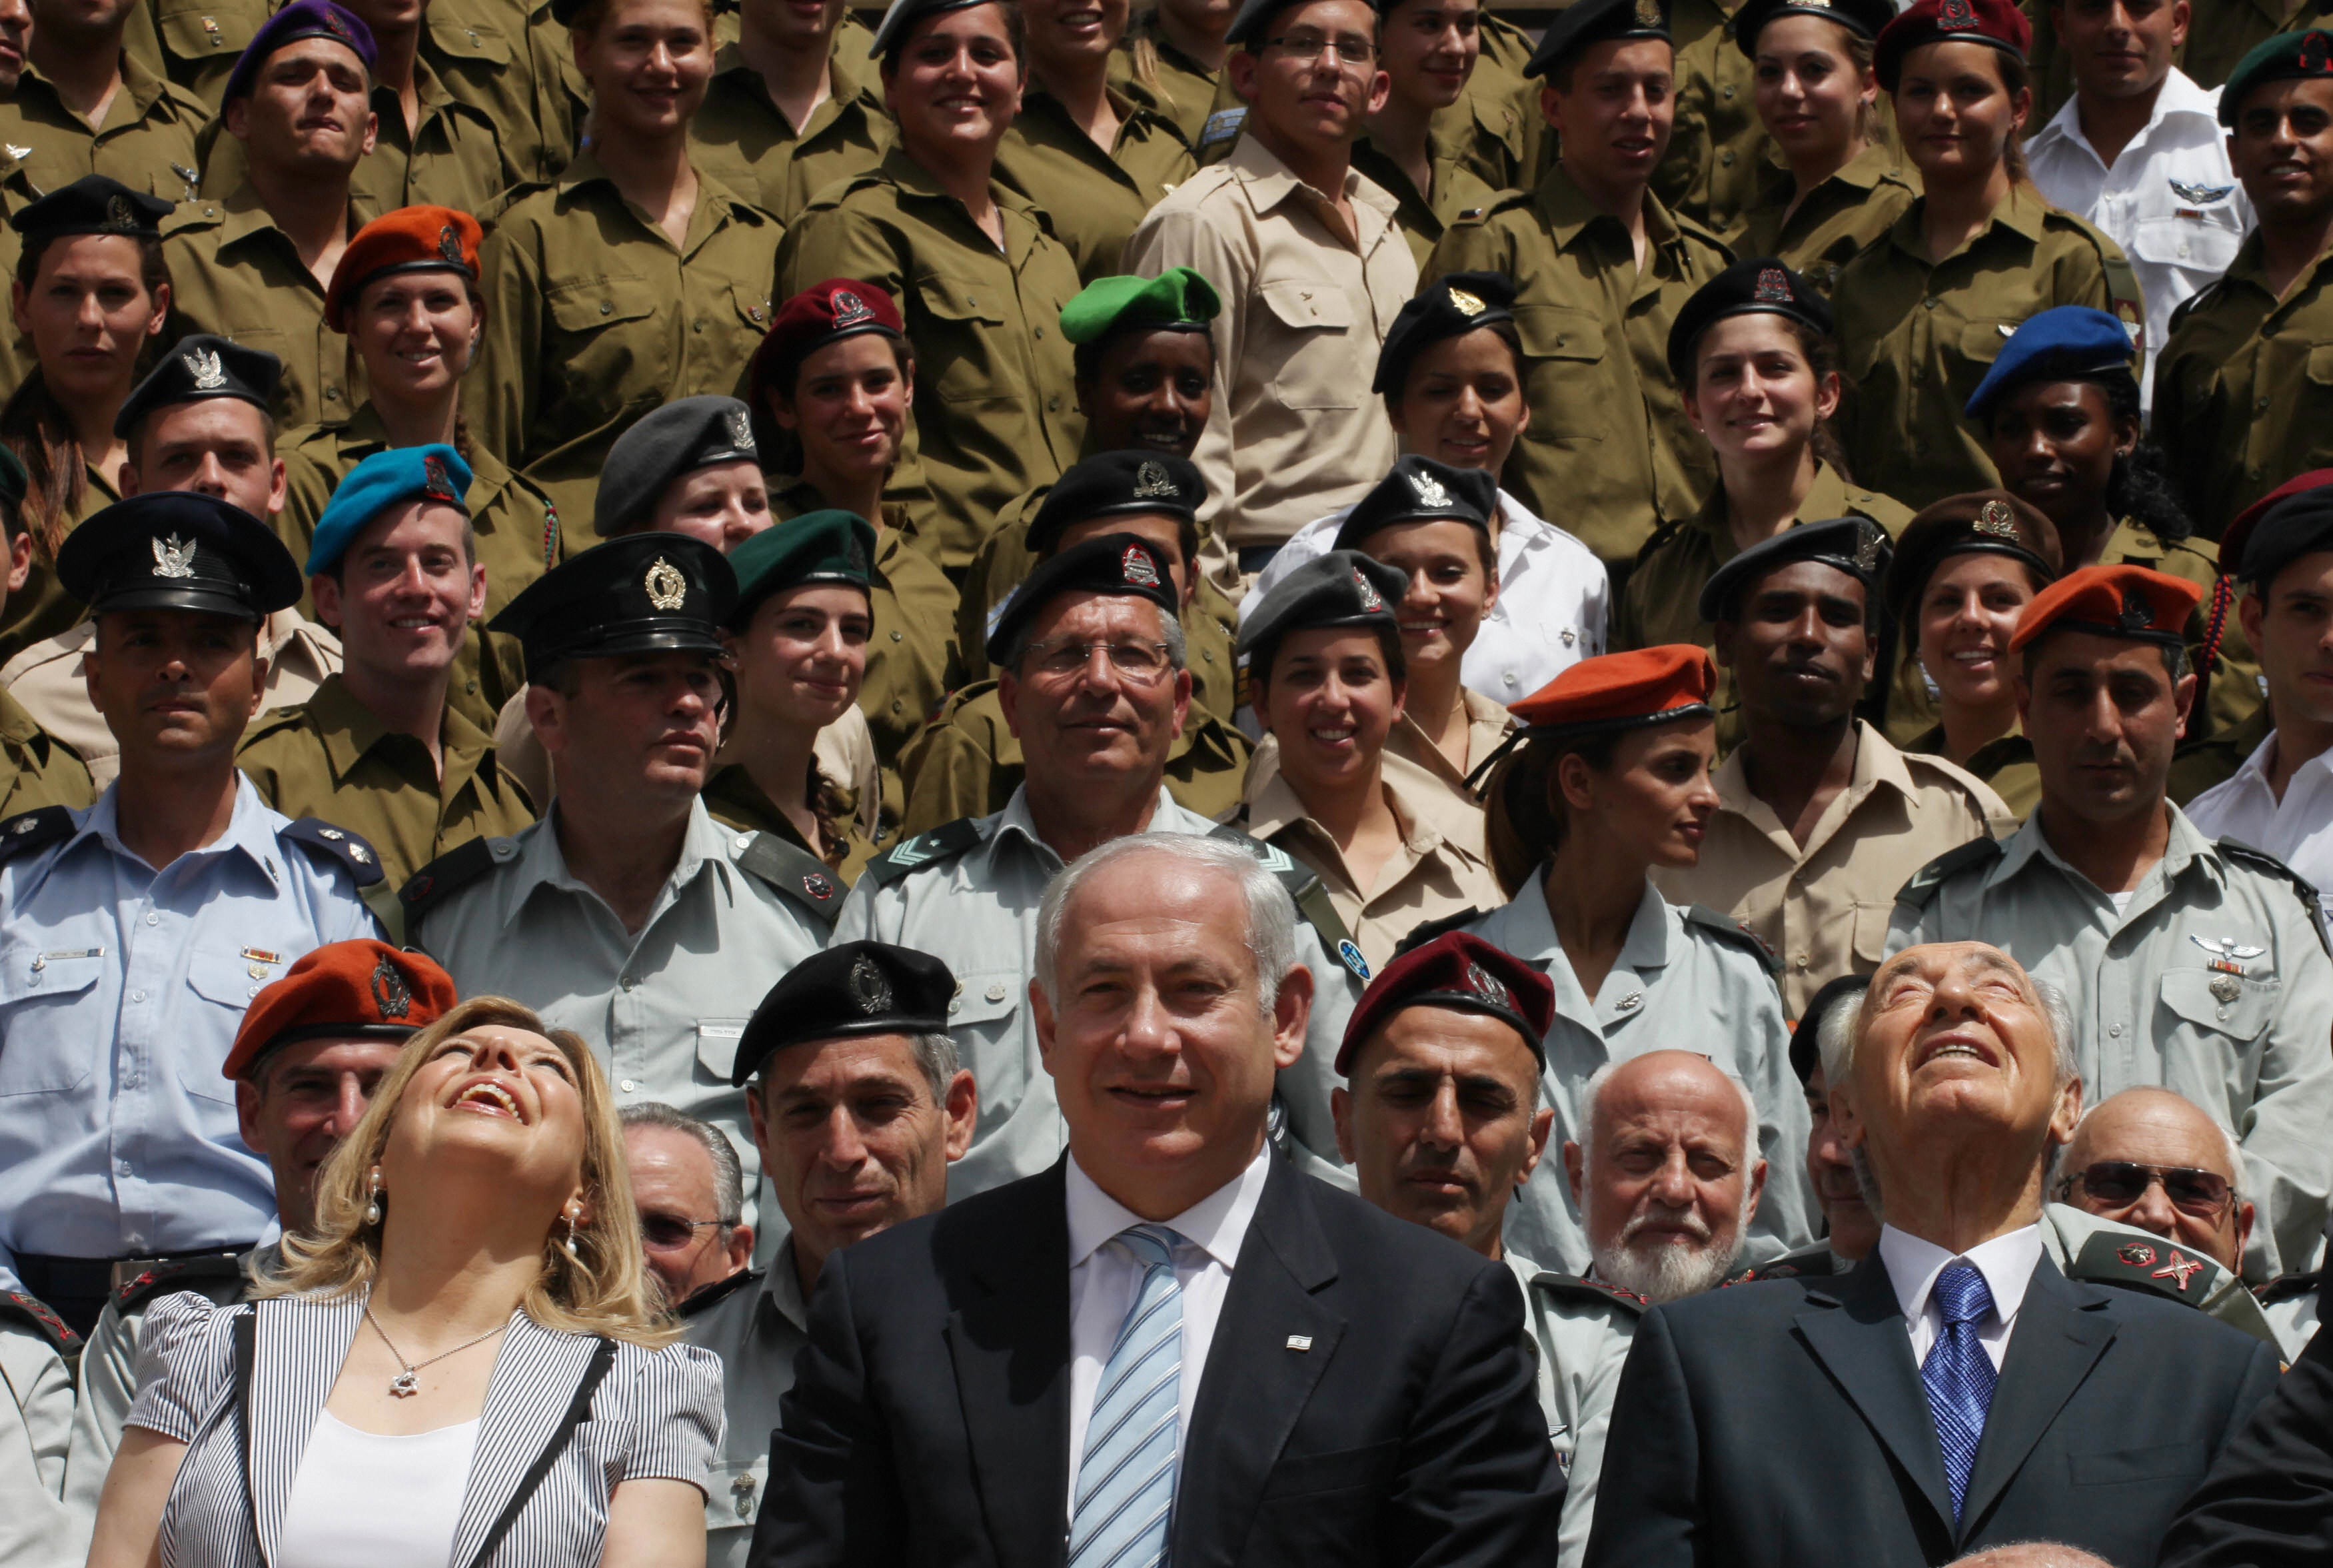 GALI TIBBON/AFP/Getty Images. Israeli Prime Minister Benjamin Netanyahu (C) stands near his wife Sara (L) and President Shimon Peres (R) as they look up at Israeli Air Force fighter jets during a ceremony for outstanding soldiers, part of Independence Day celebrations, on April 29, 2009 in Jerusalem. Israelis marked Independence Day, celebrating the 61st year since the founding of the Jewish State in 1948.